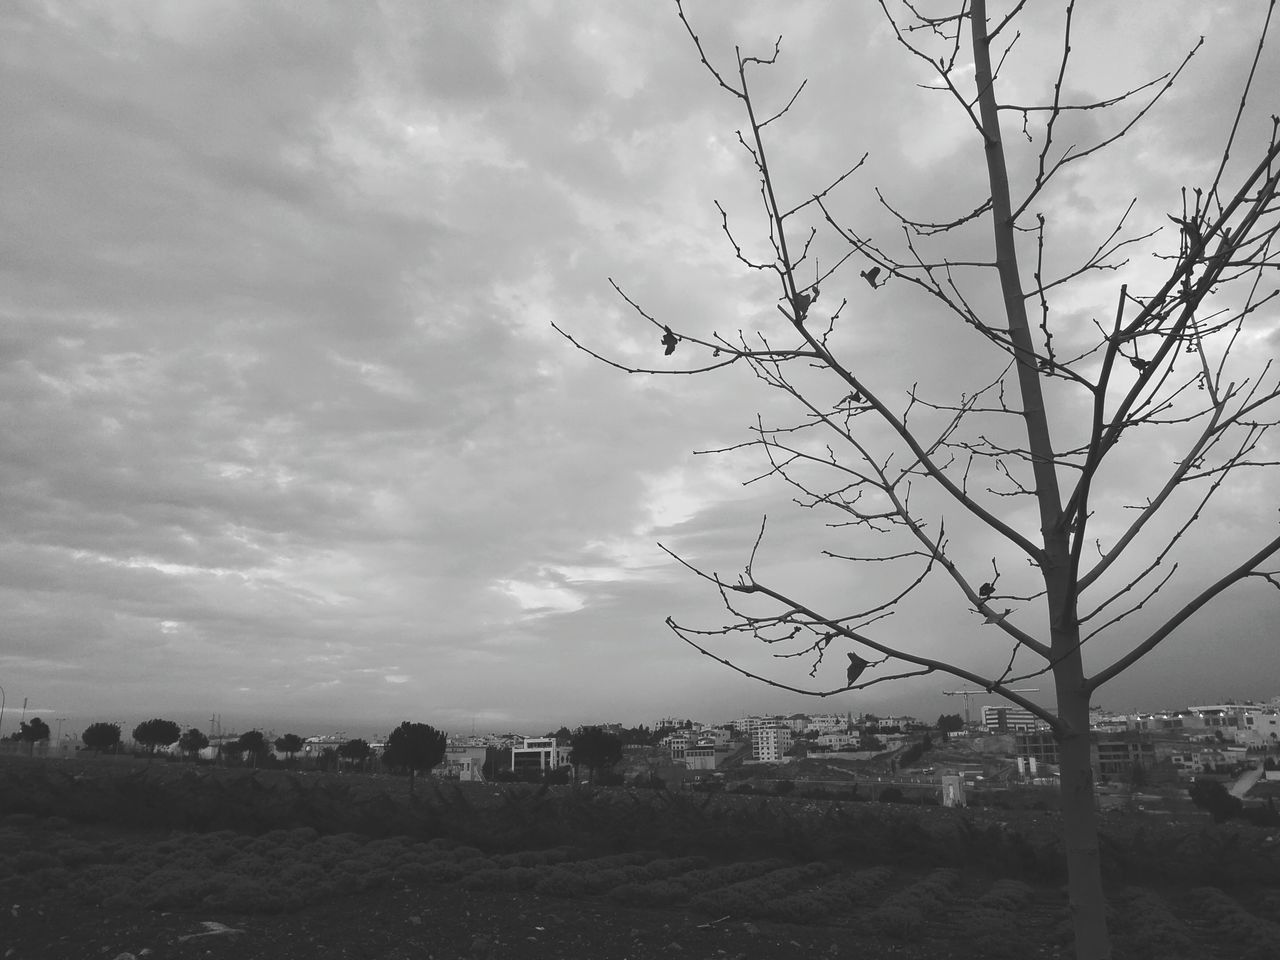 sky, cloud - sky, no people, outdoors, nature, day, bare tree, beauty in nature, landscape, scenics, tree